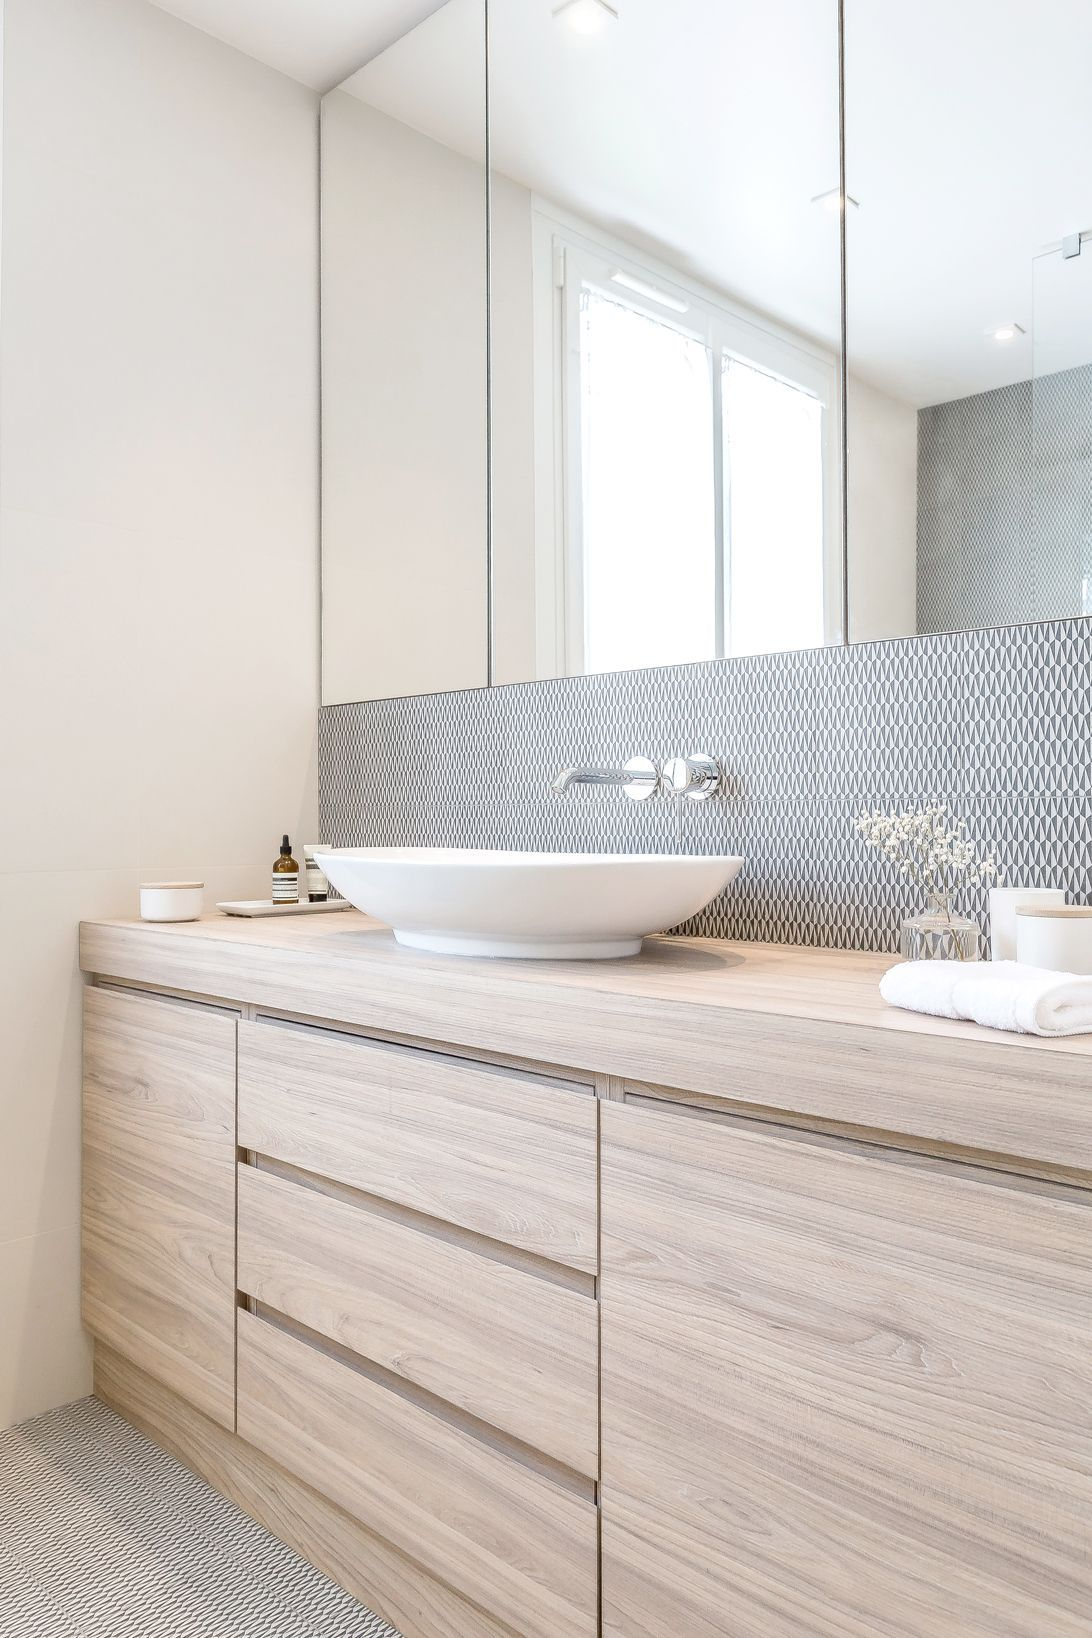 6 Tips To Make Your Bathroom Renovation Look Amazing | Modern ...